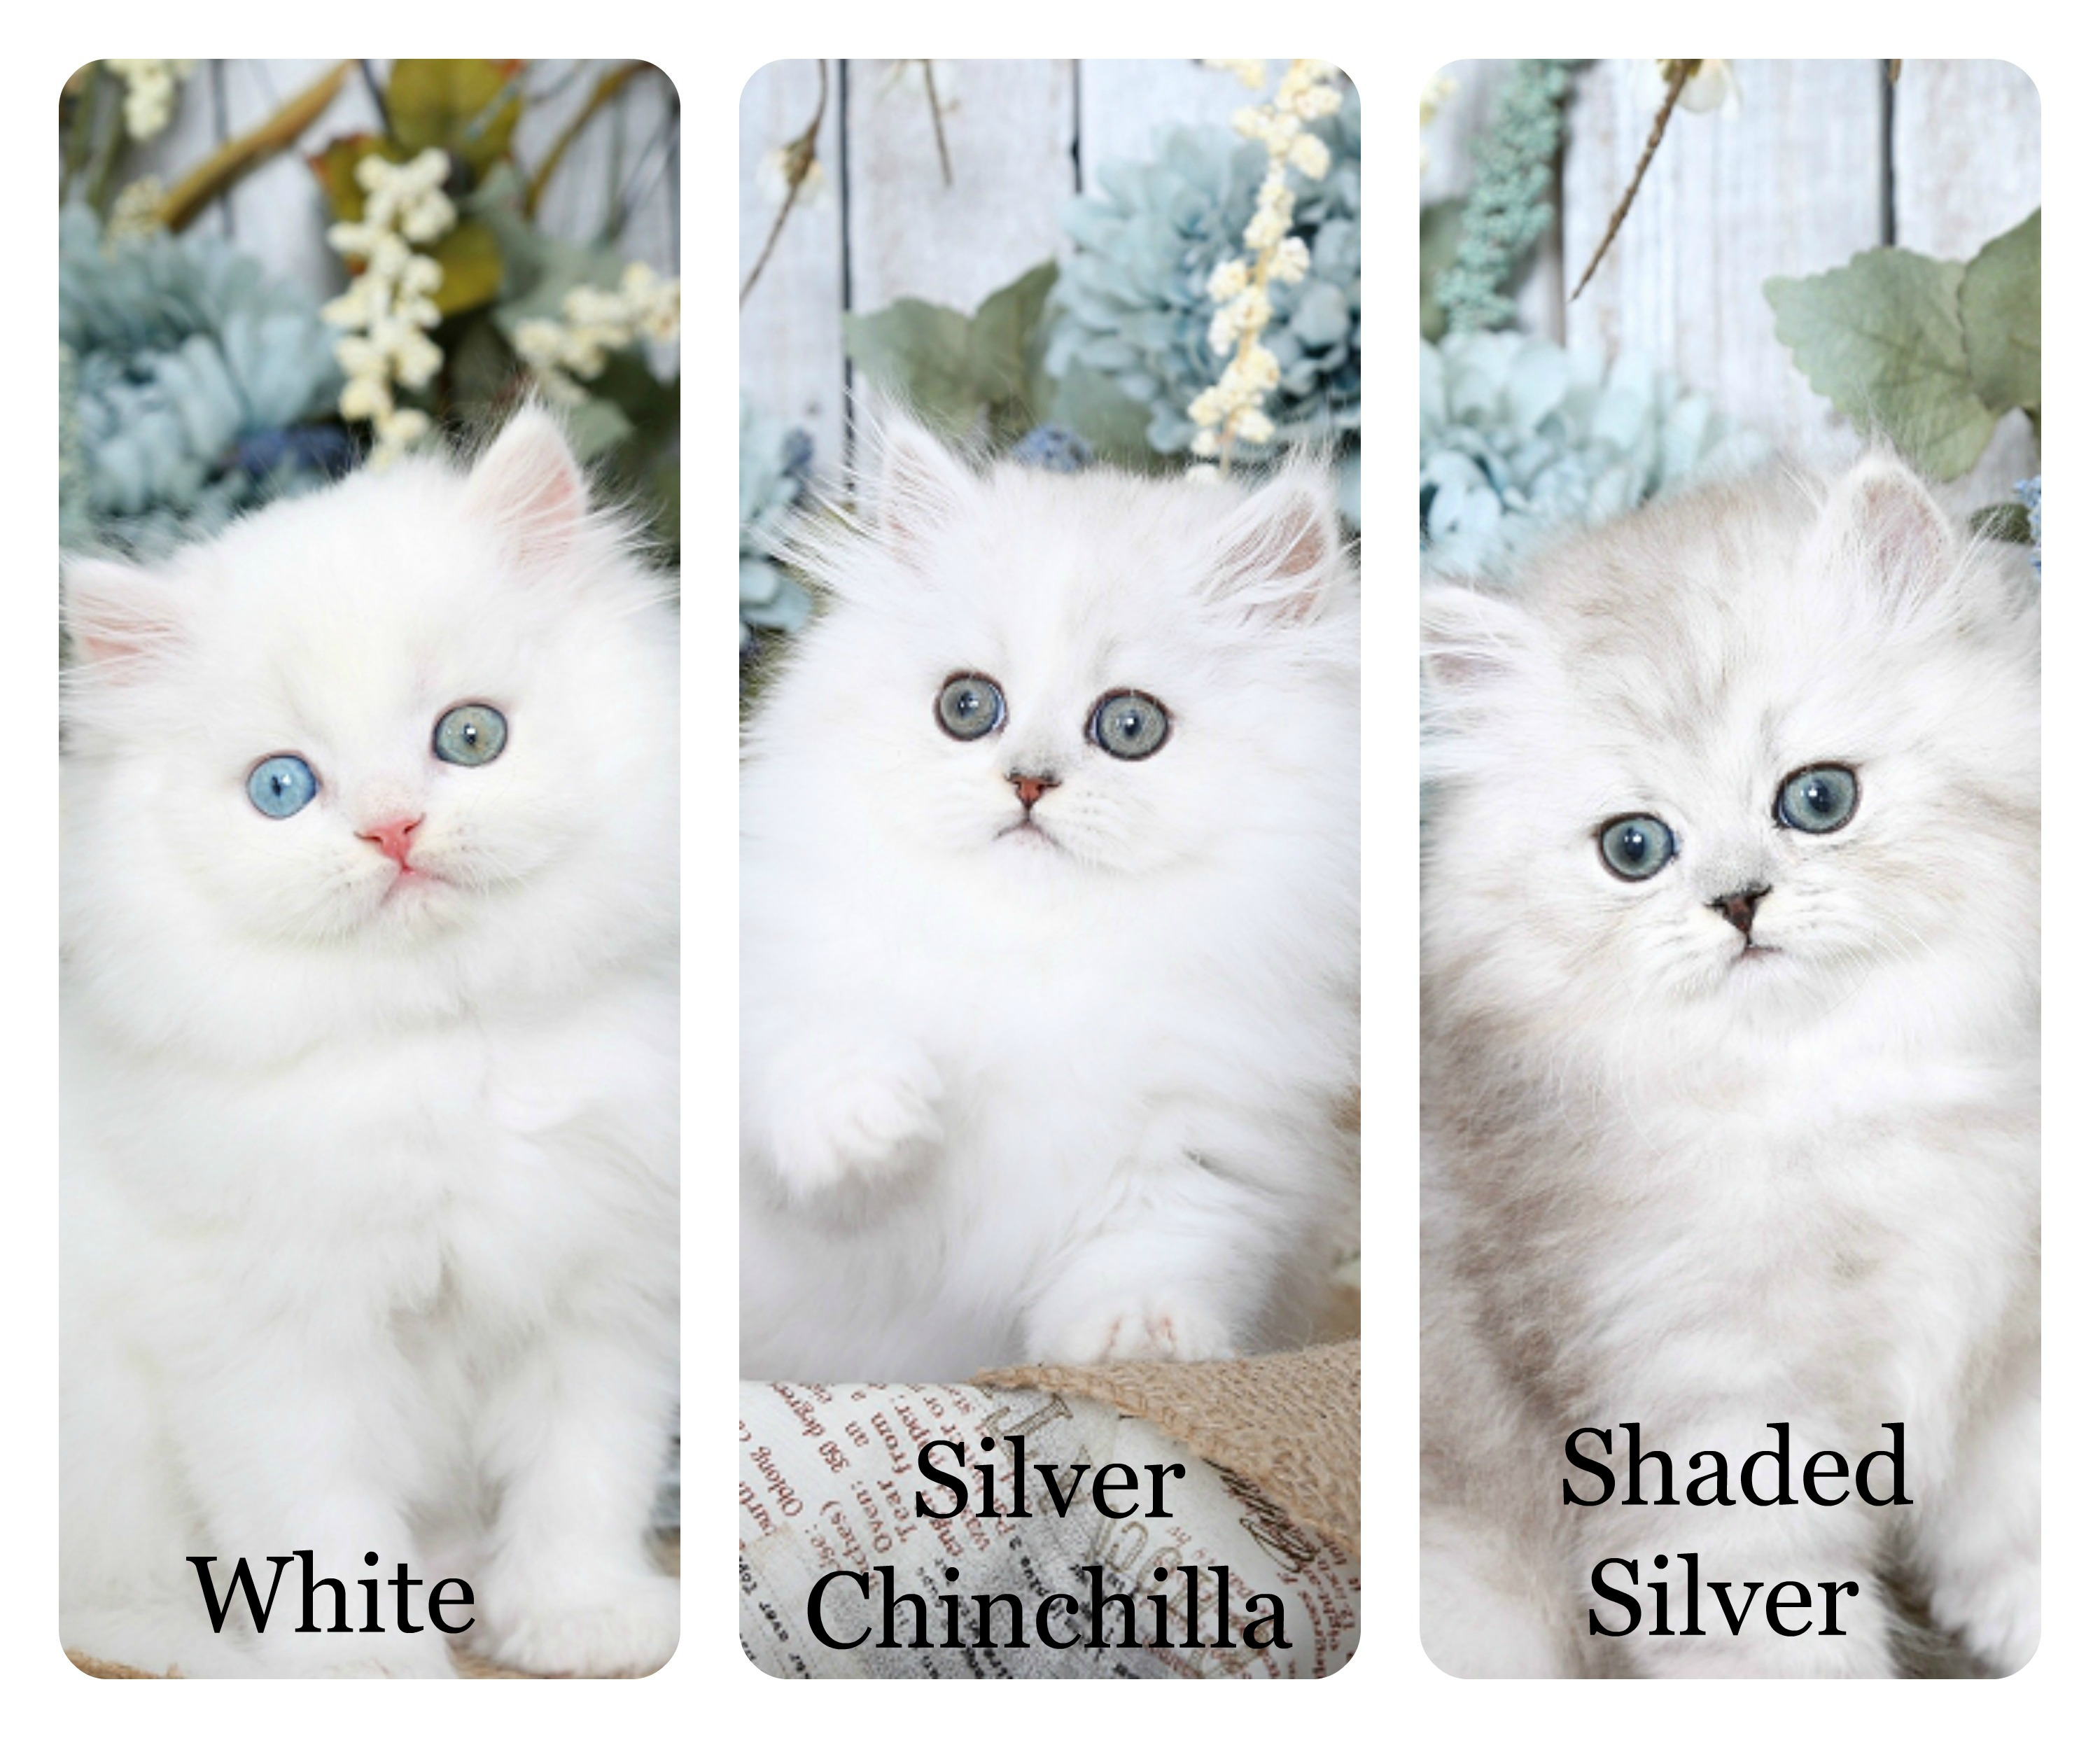 White, Silver, & Shaded Silver Persian